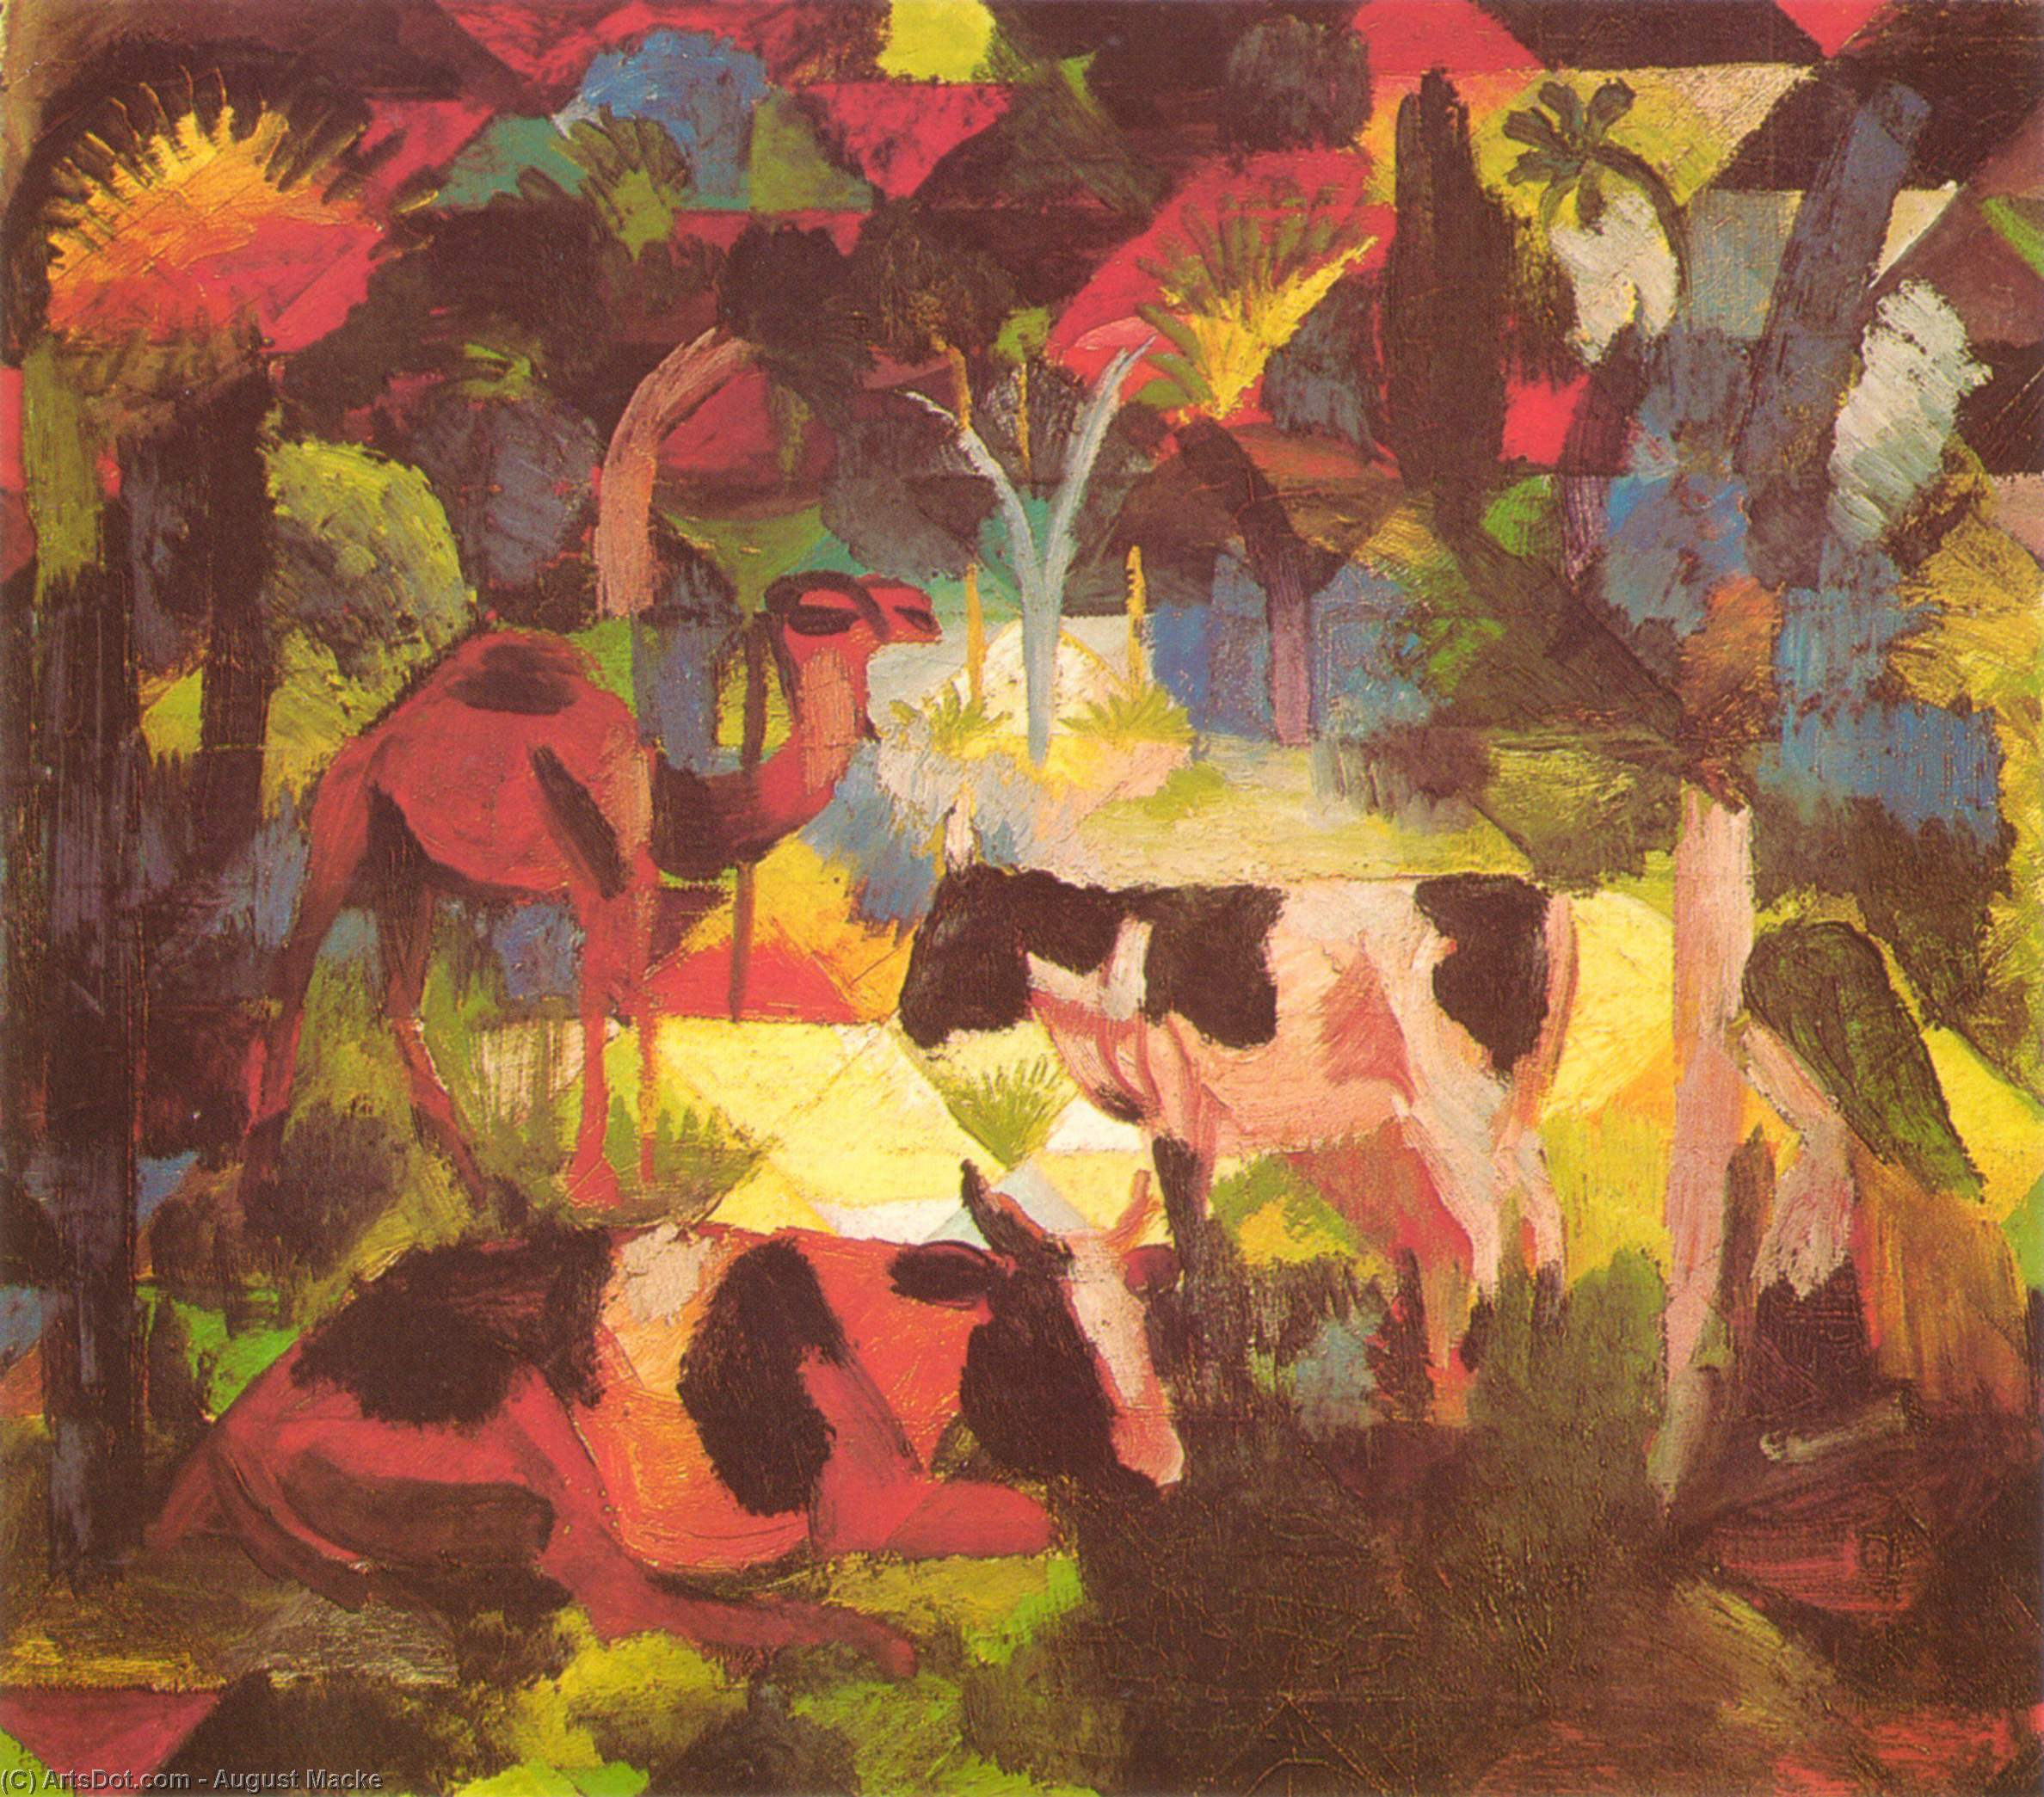 WikiOO.org - Encyclopedia of Fine Arts - Malba, Artwork August Macke - Landscape with Cows and Camel